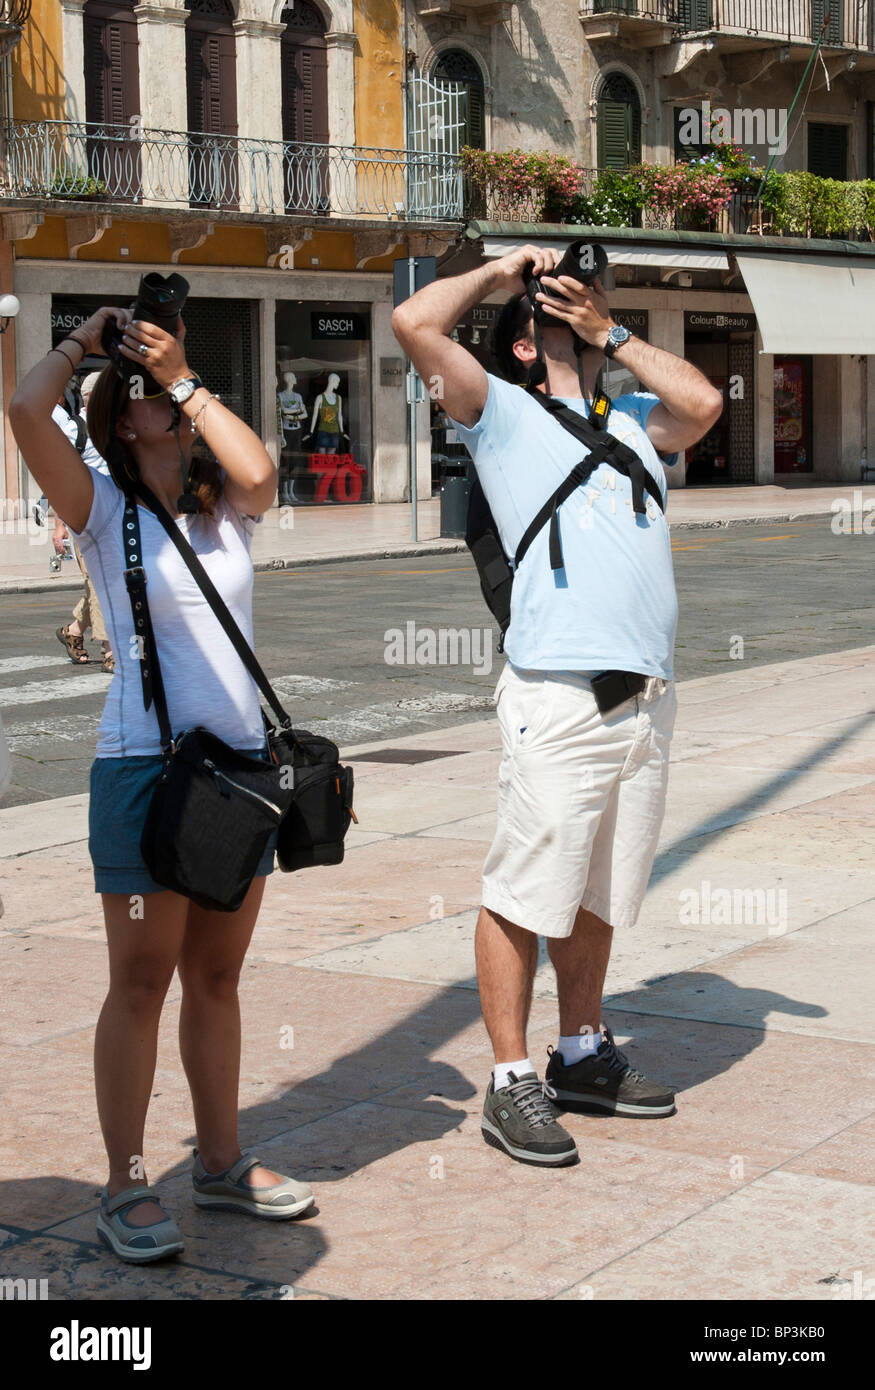 Two tourists take pictures in Piazza Erbe Verona Italy - Stock Image